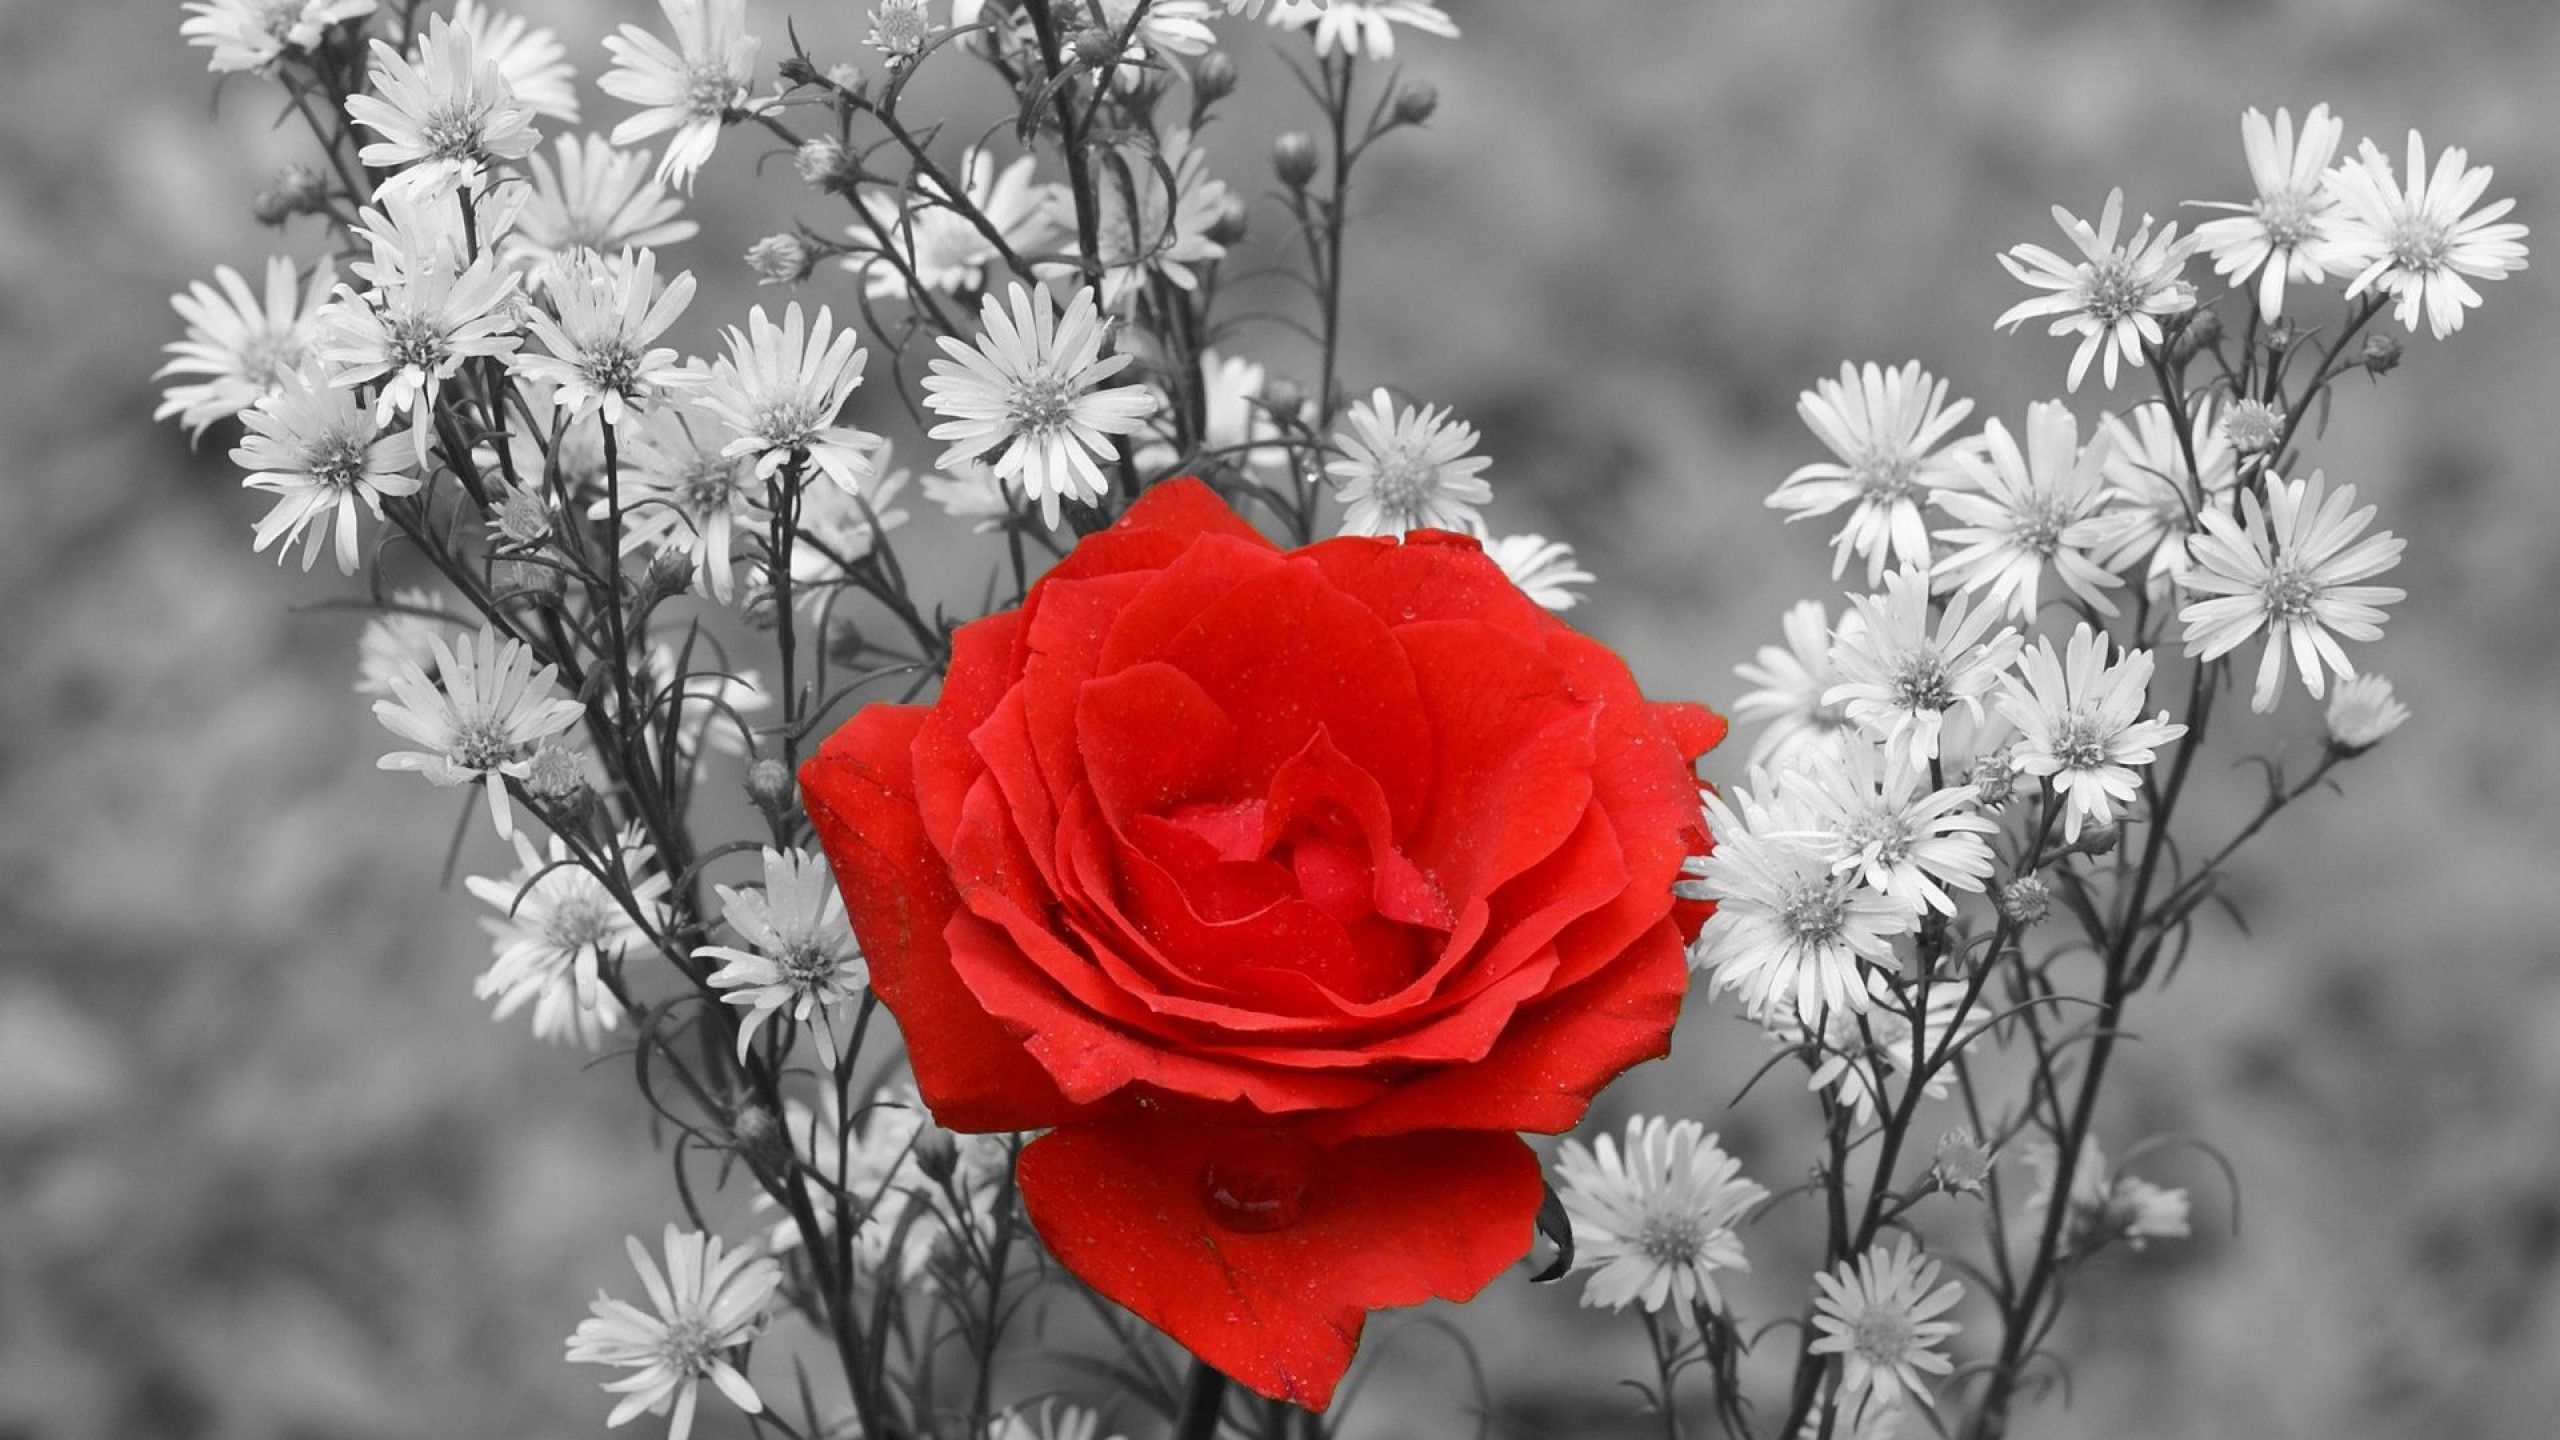 Red Rose Wallpaper 2560 1440 High Definition Wallpaper Daily